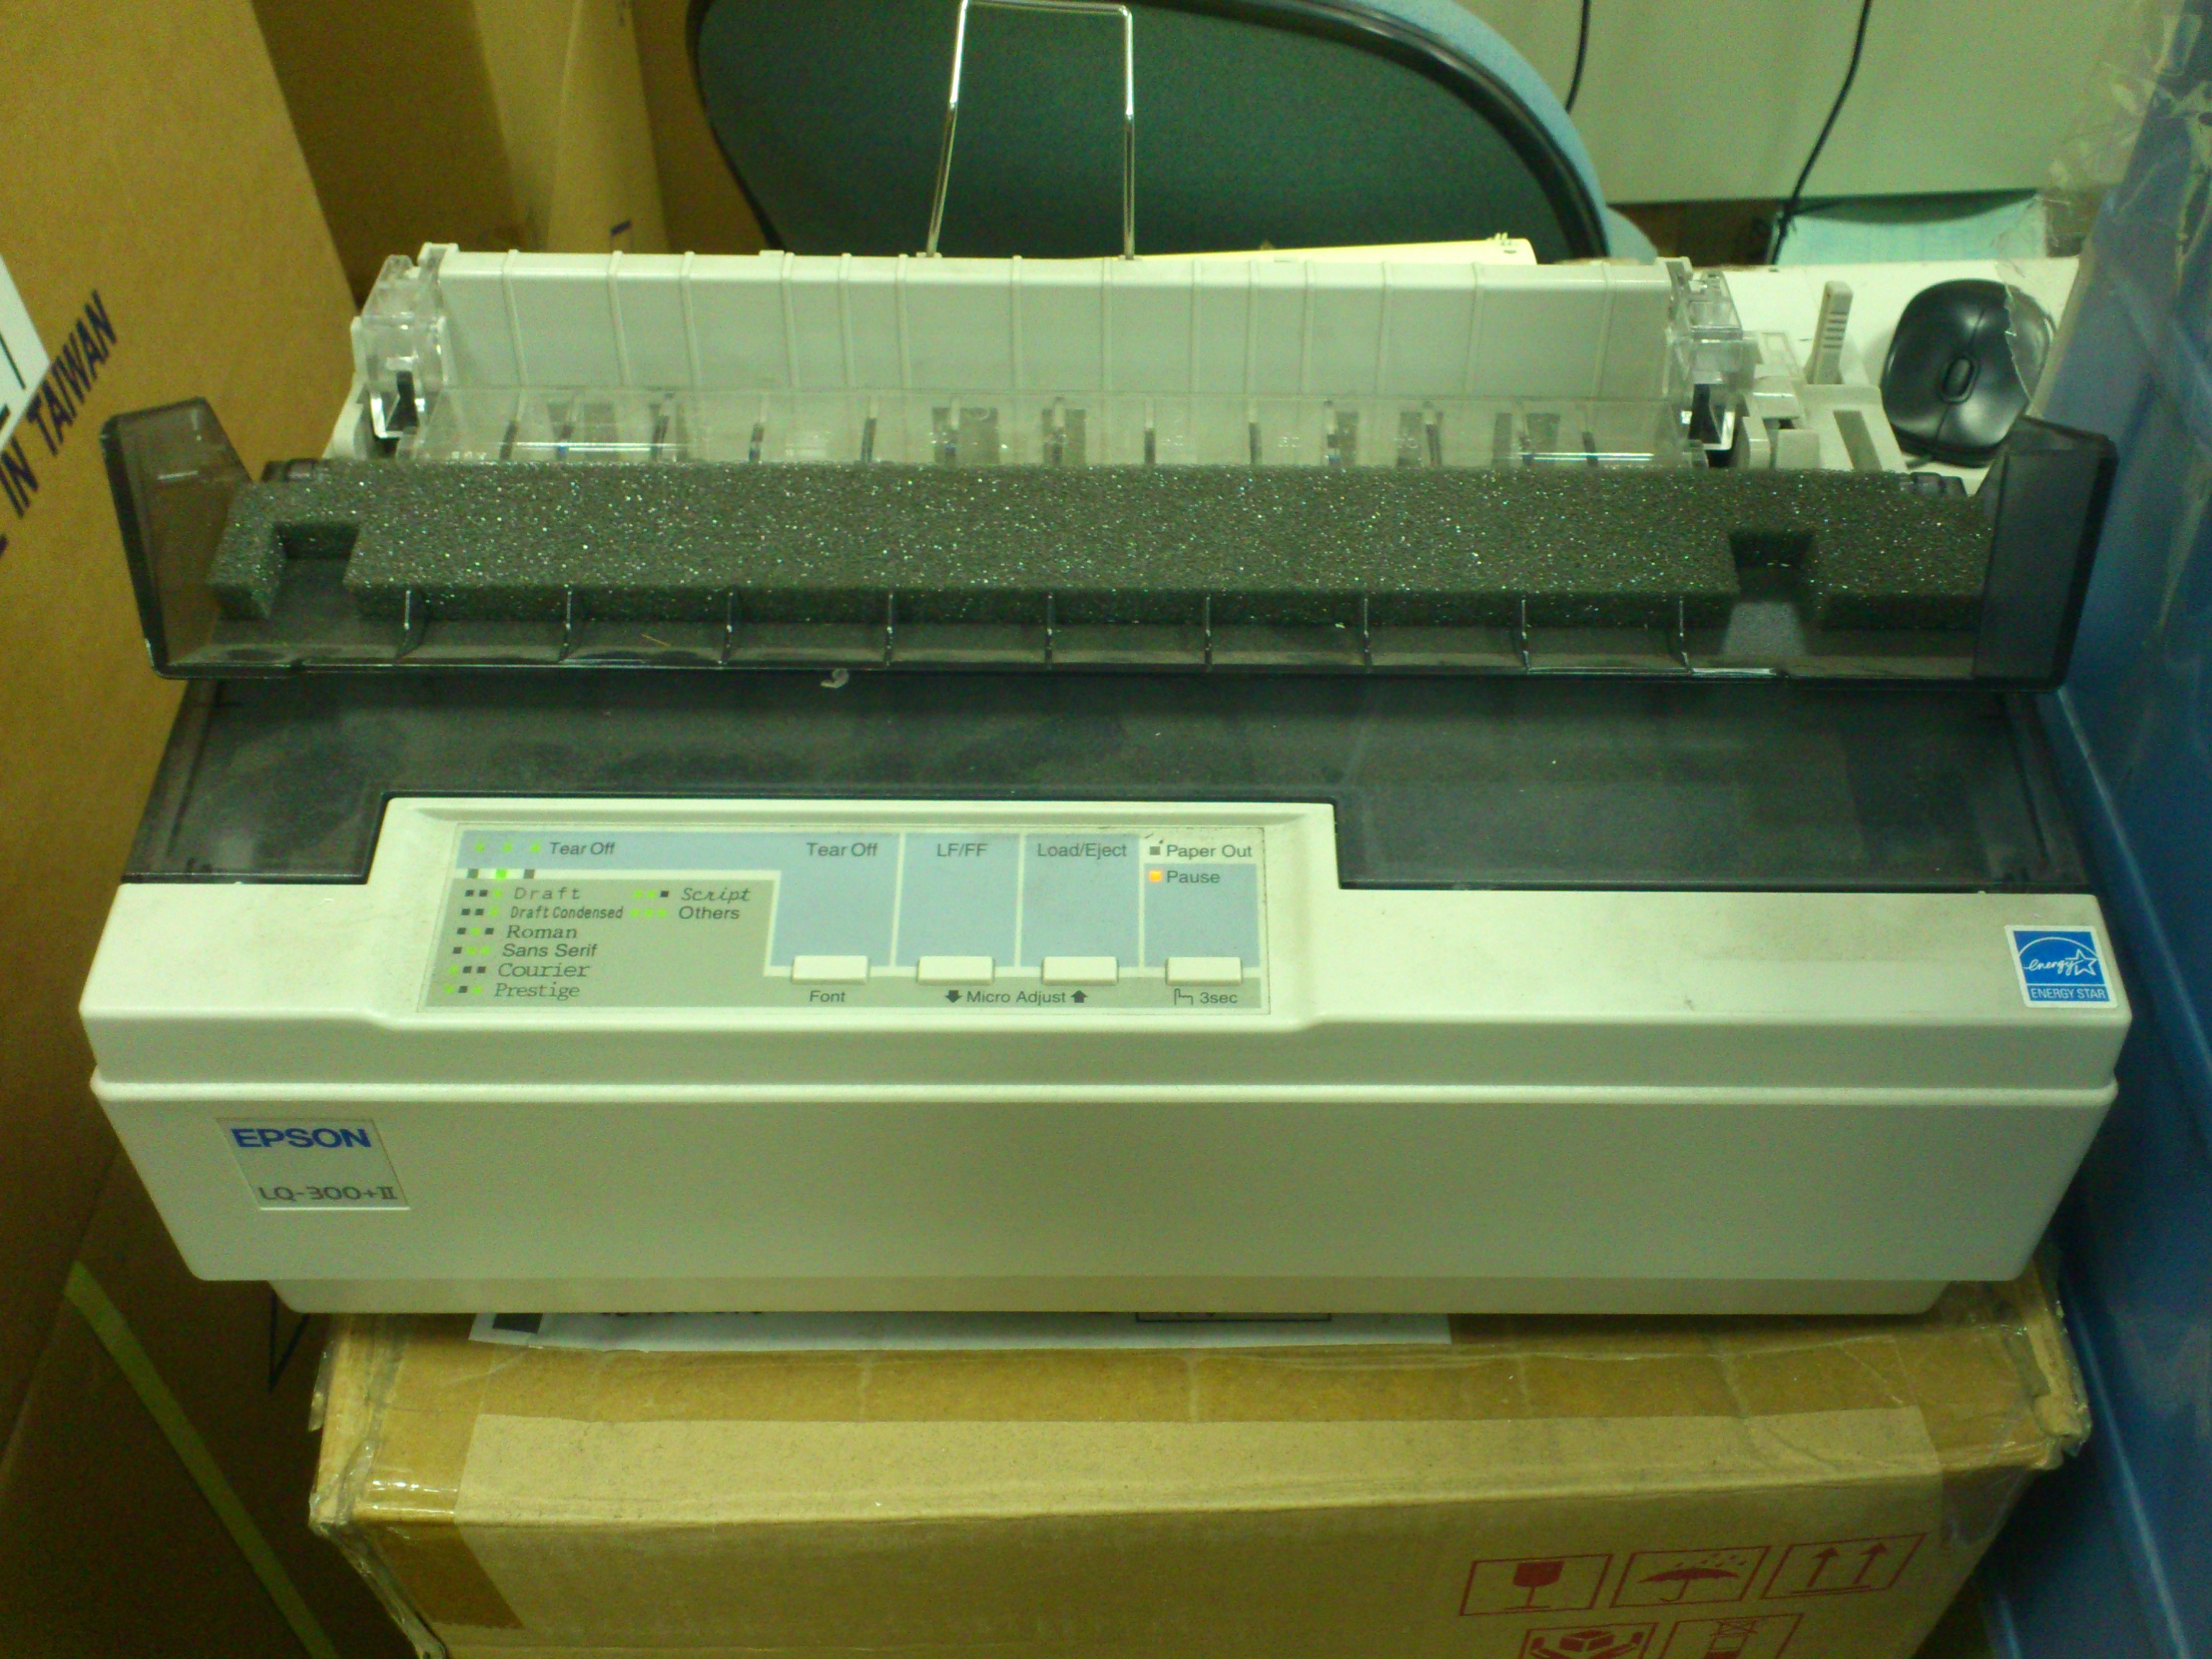 EPSON LQ-400 DRIVER FOR WINDOWS